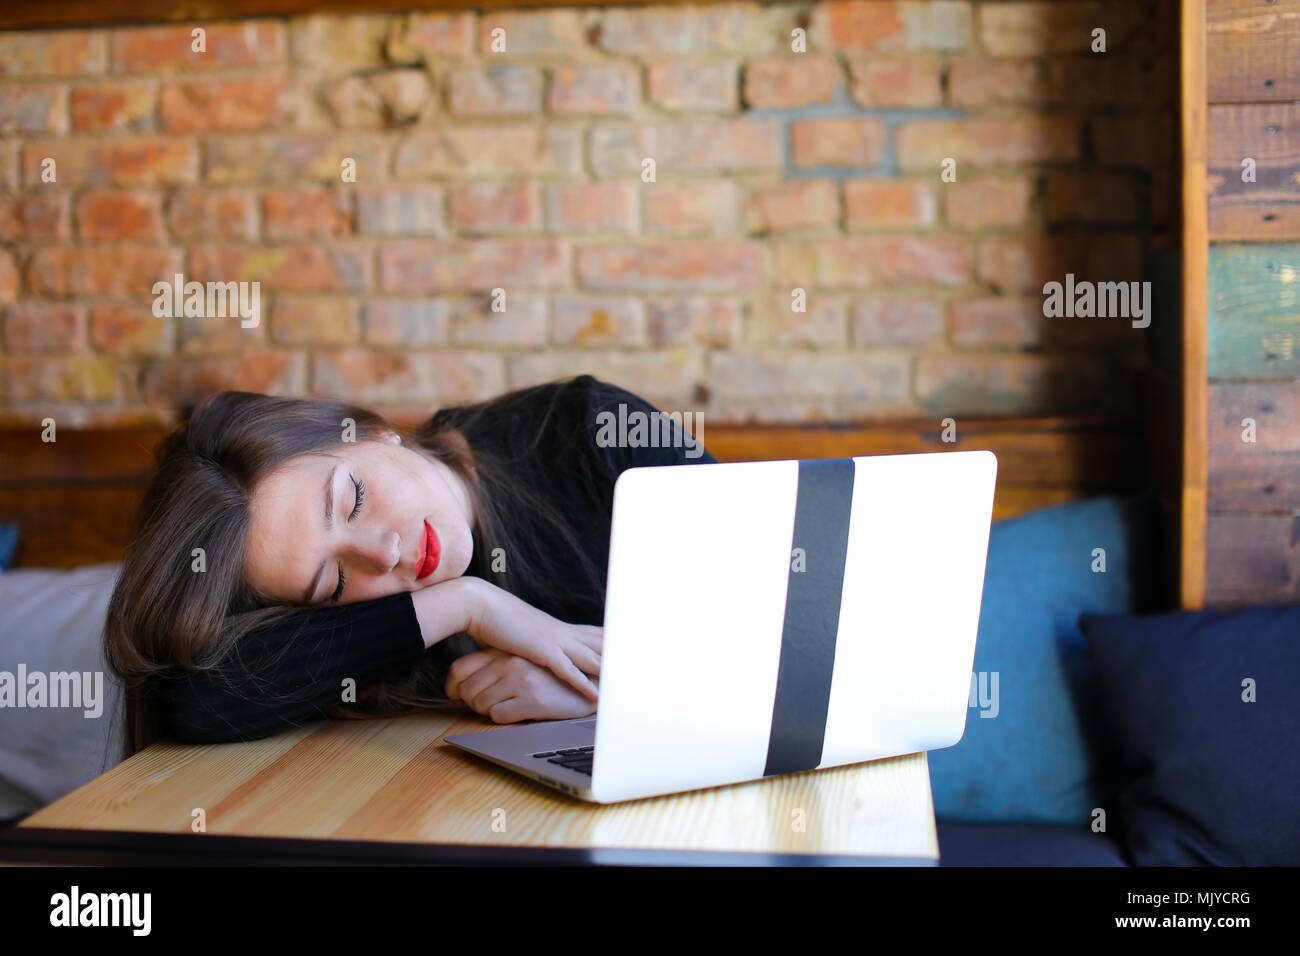 Exhausted pretty student sitting near modern laptop at cafe on sofa. - Stock Image